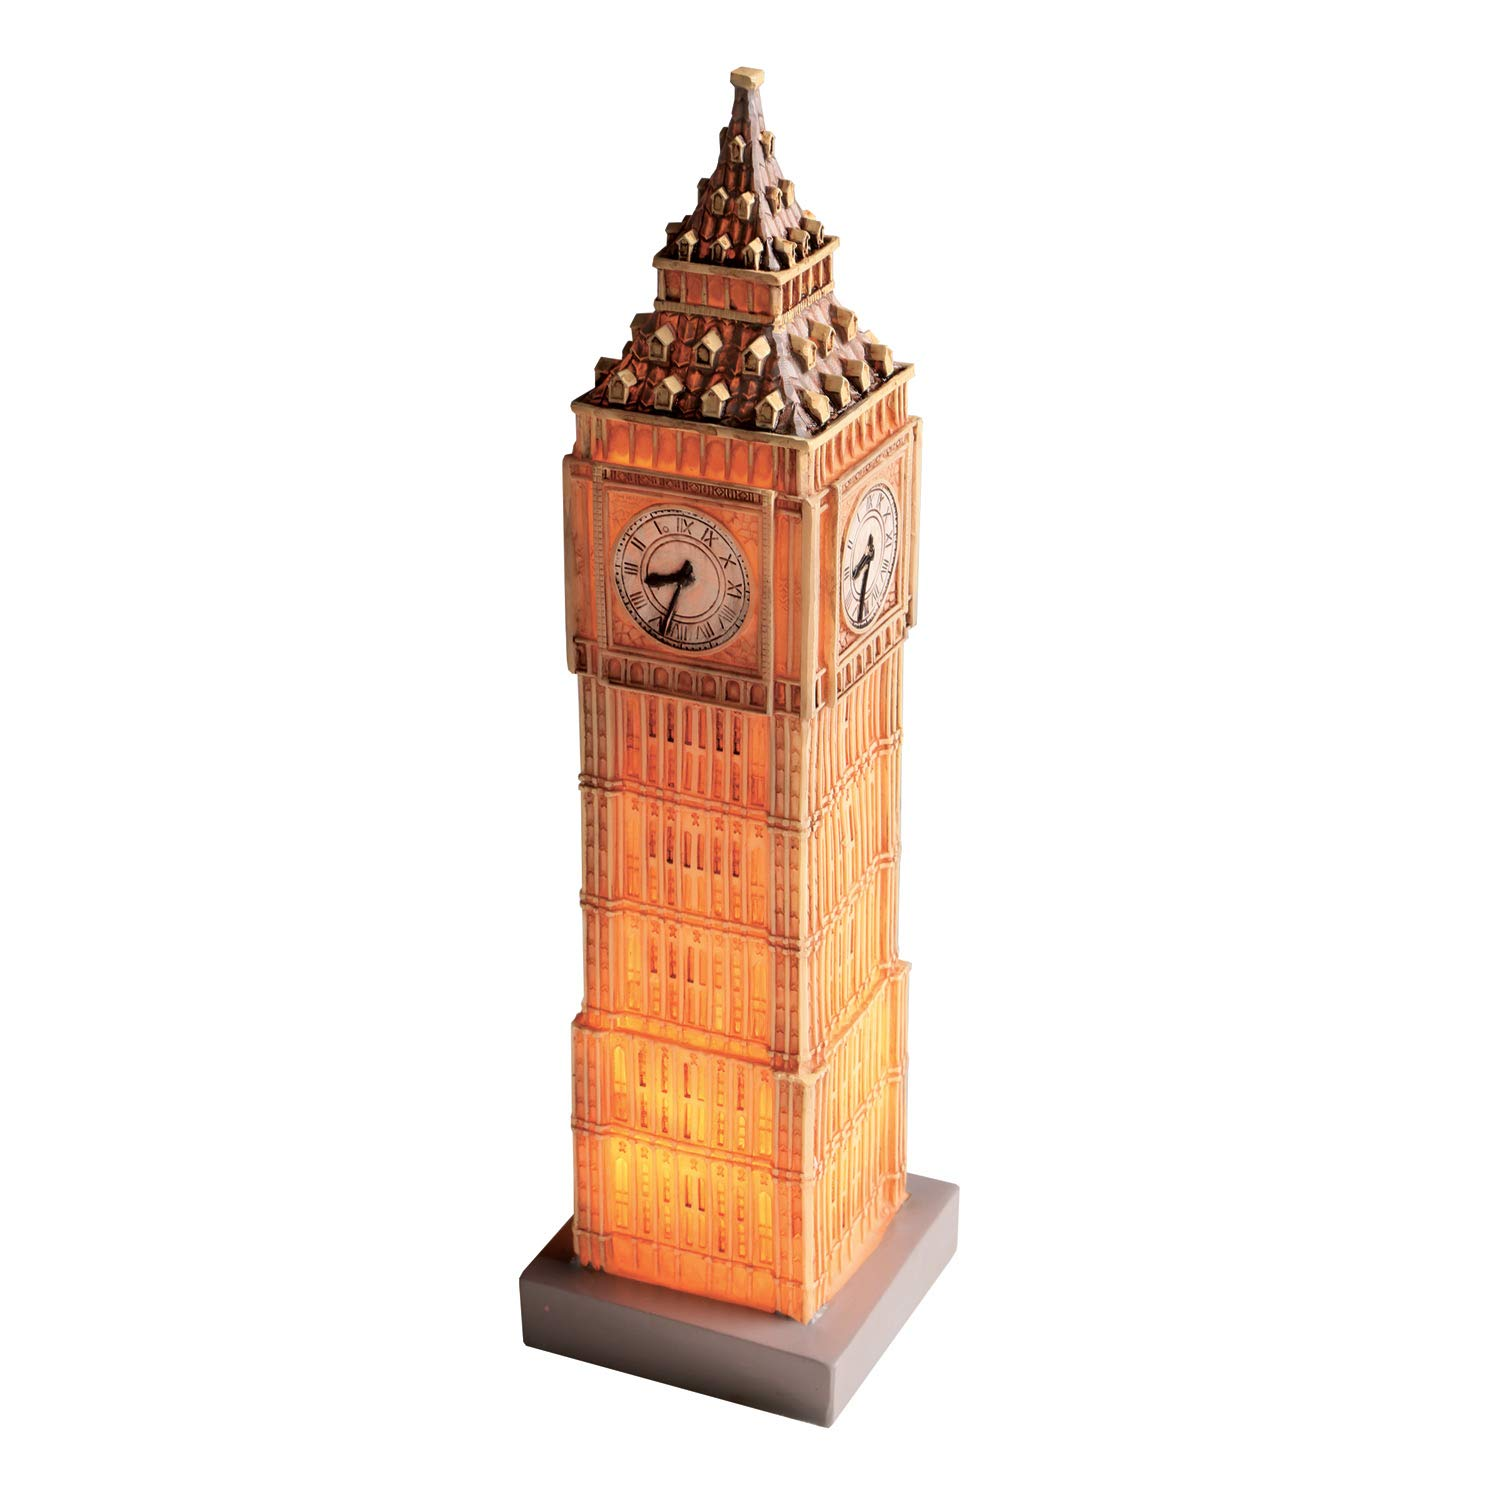 what earth great places table lamp london england big ben tiny accent lamps small light for desk american heritage furniture legs little with drawers kitchen chairs set lift top